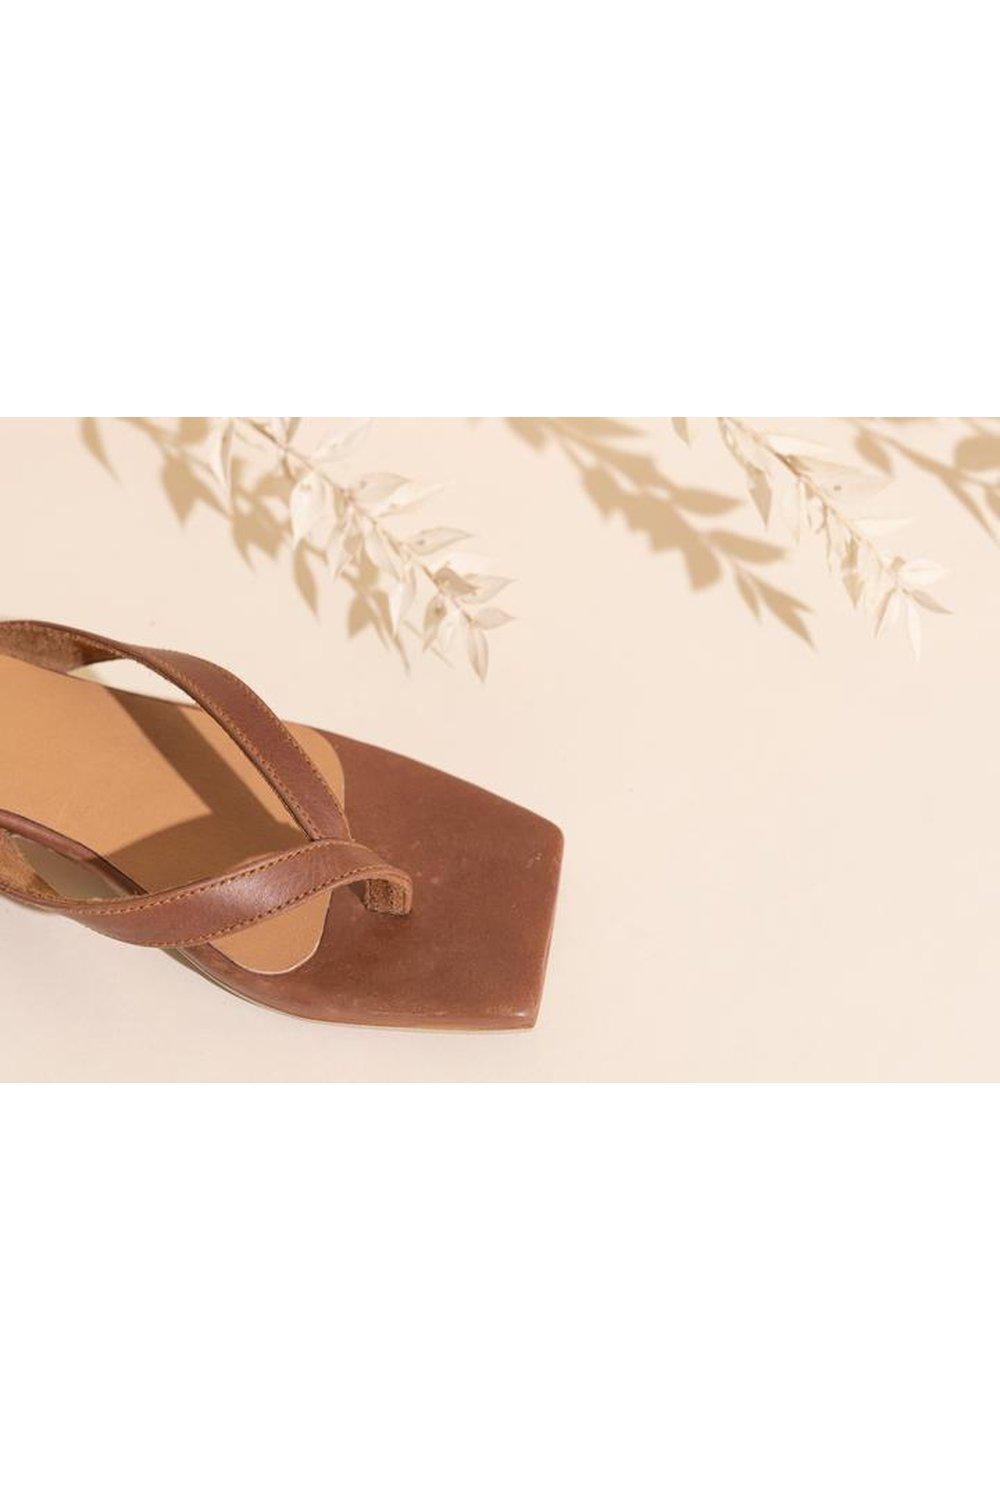 Innamorata Kitten Heel - Brown Vintage | James Smith | Mad About The Boy